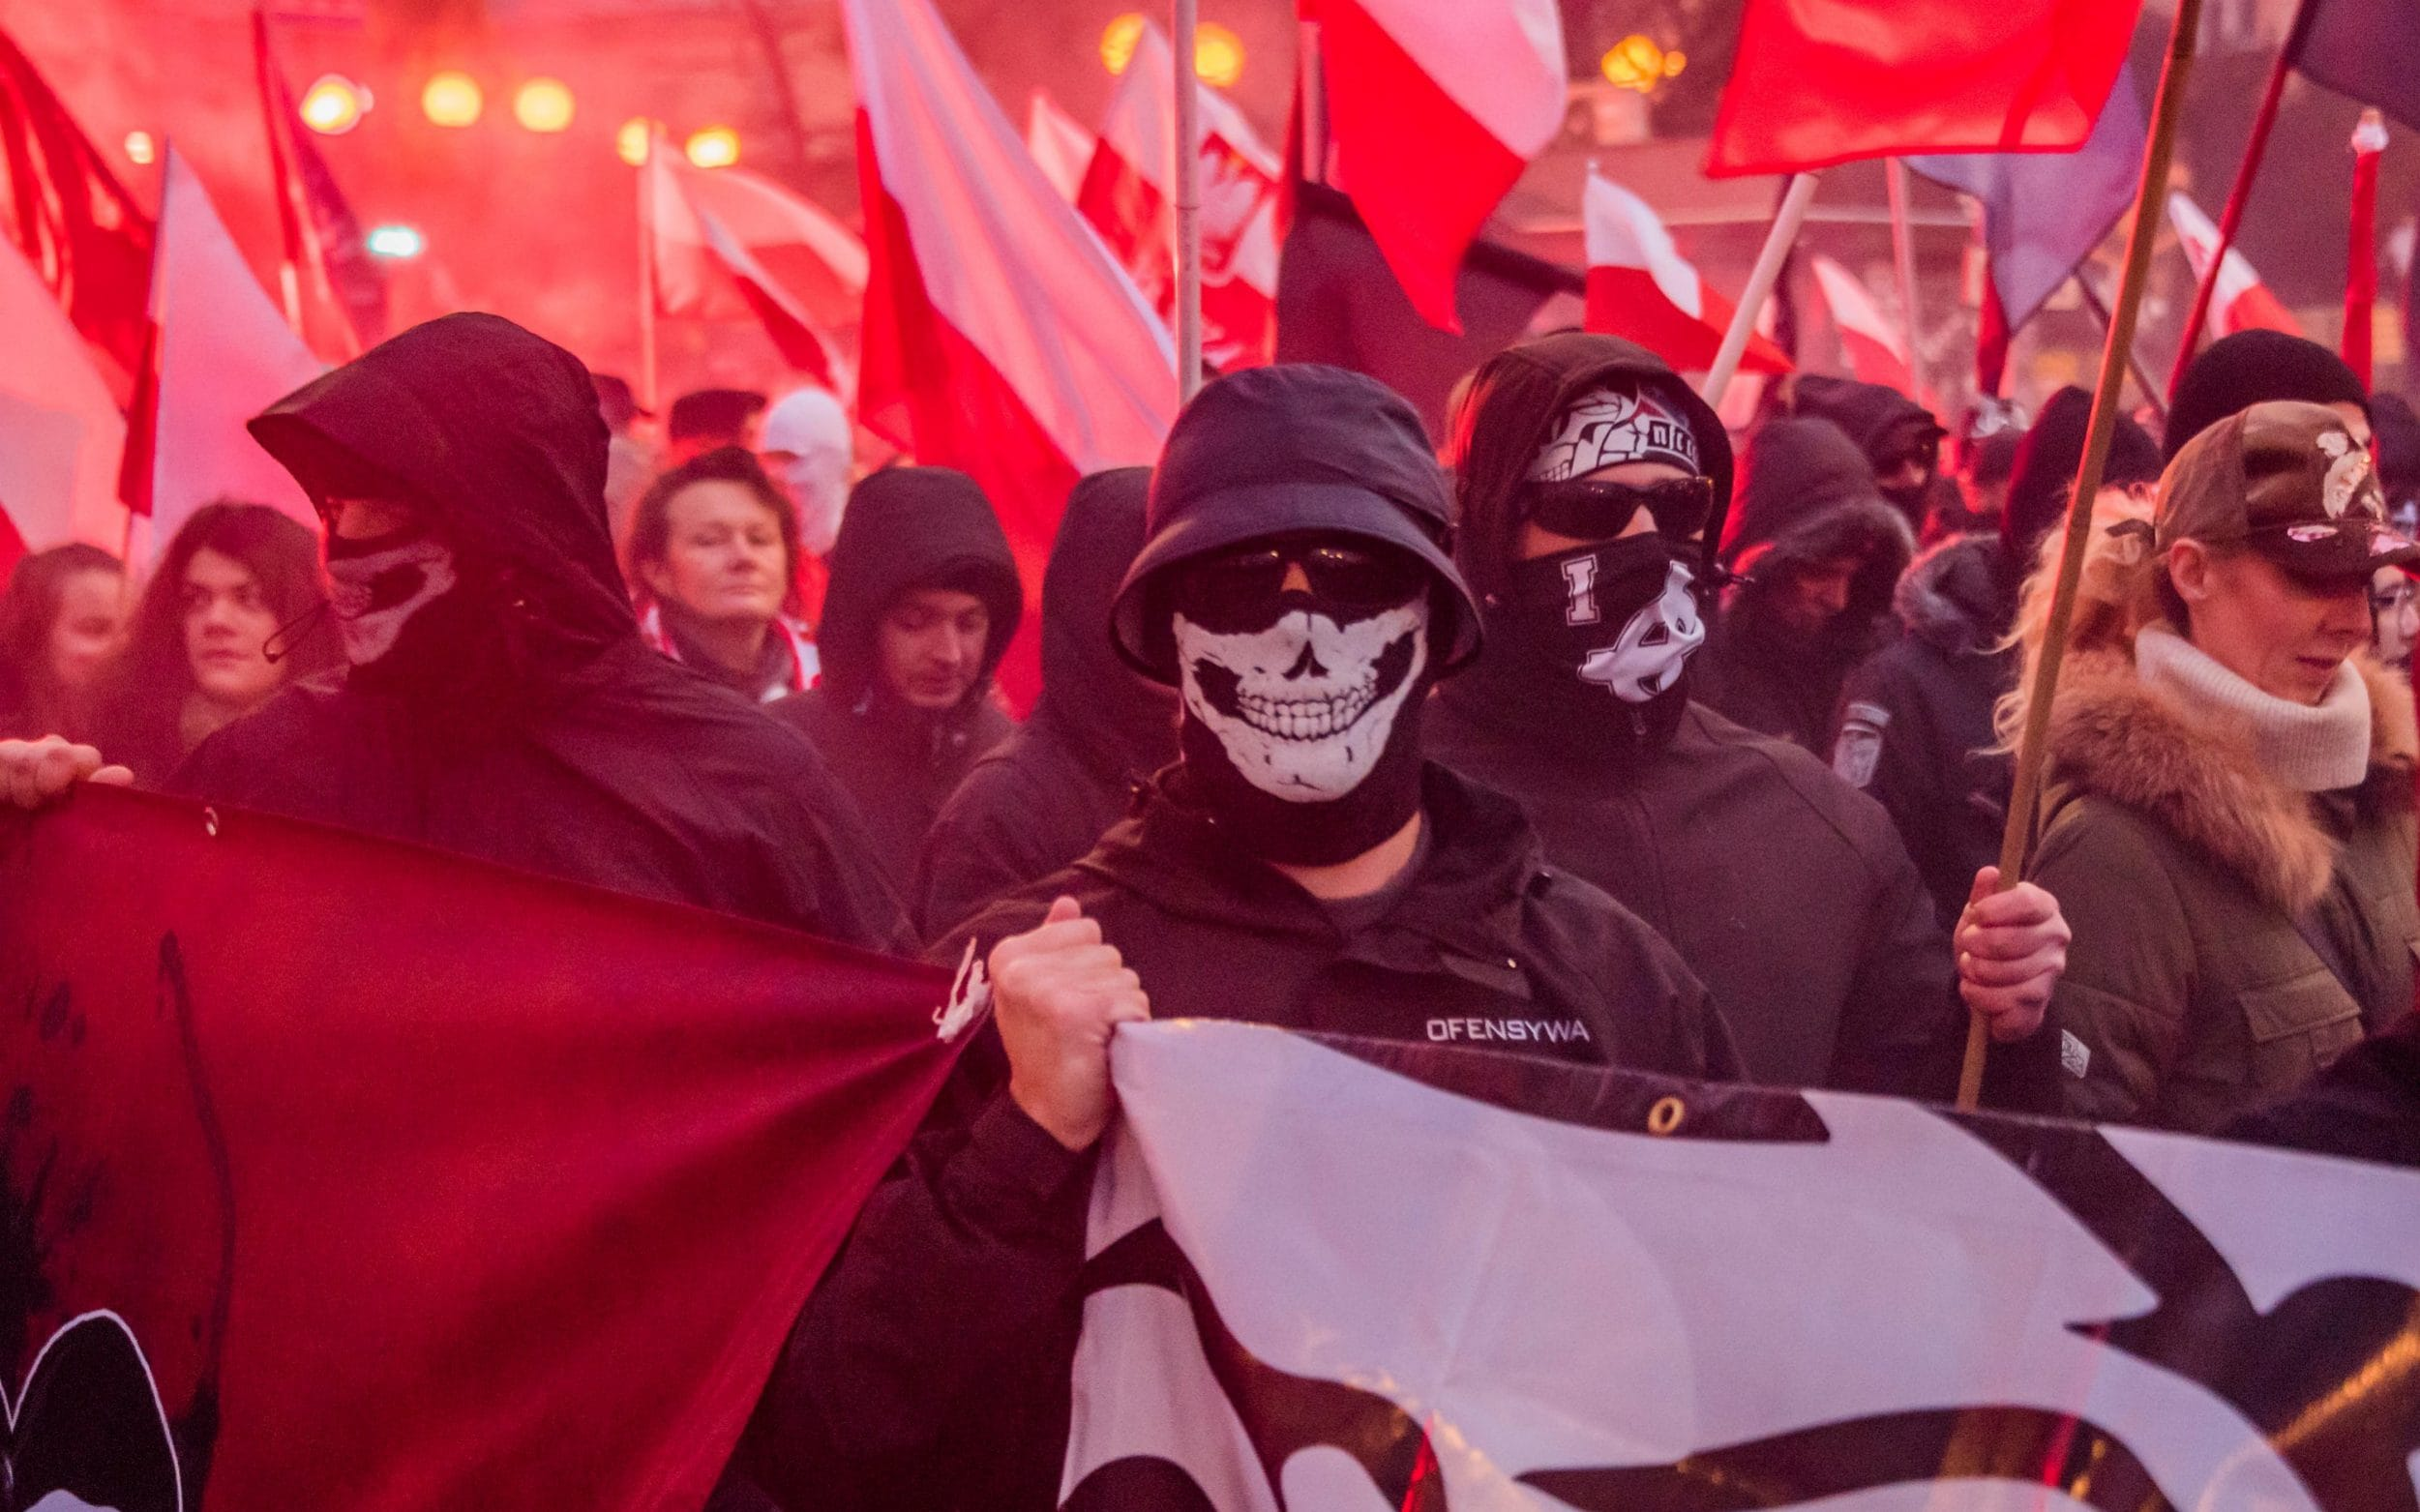 Thousands of Fascists & other far-right extremists from ...